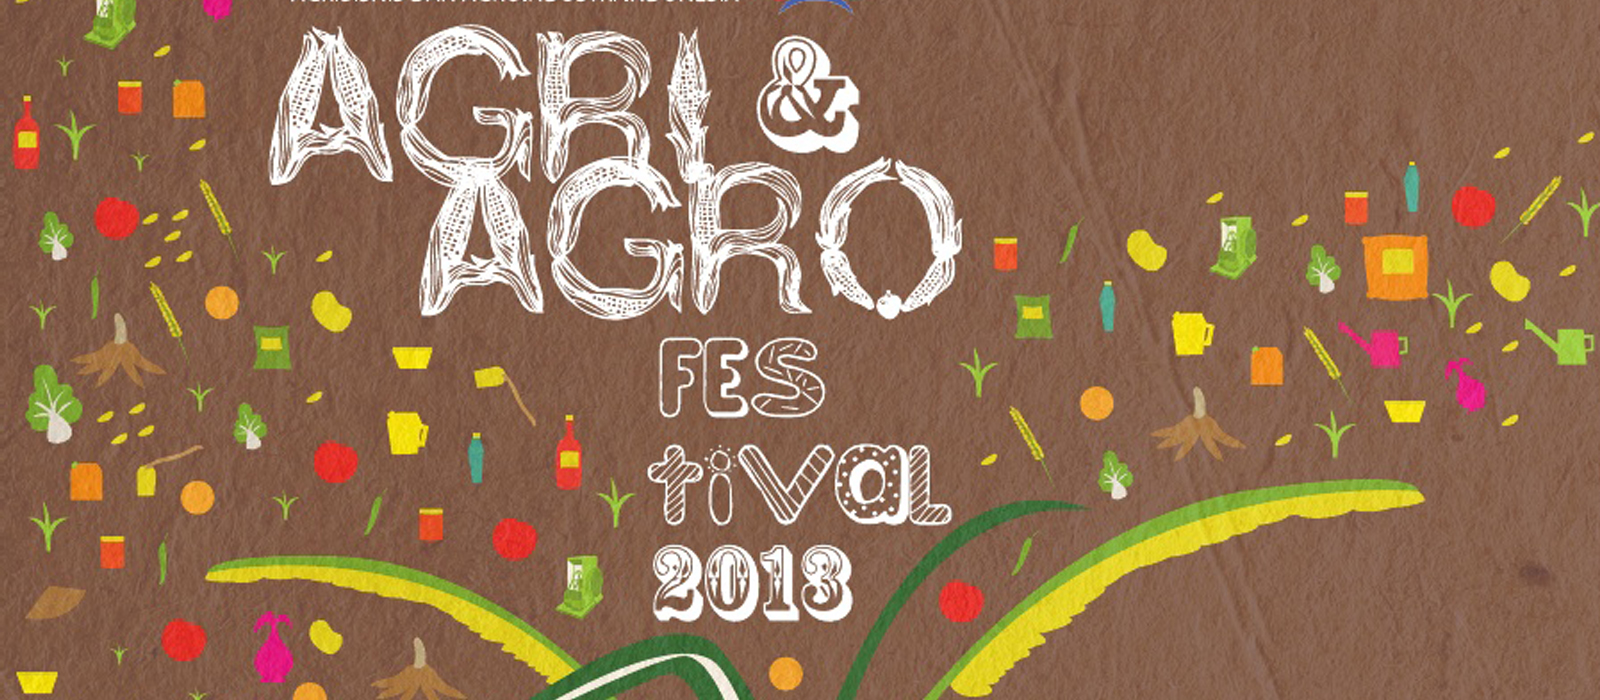 Supporting Local Farmers in Agri & Agro Festival 2013